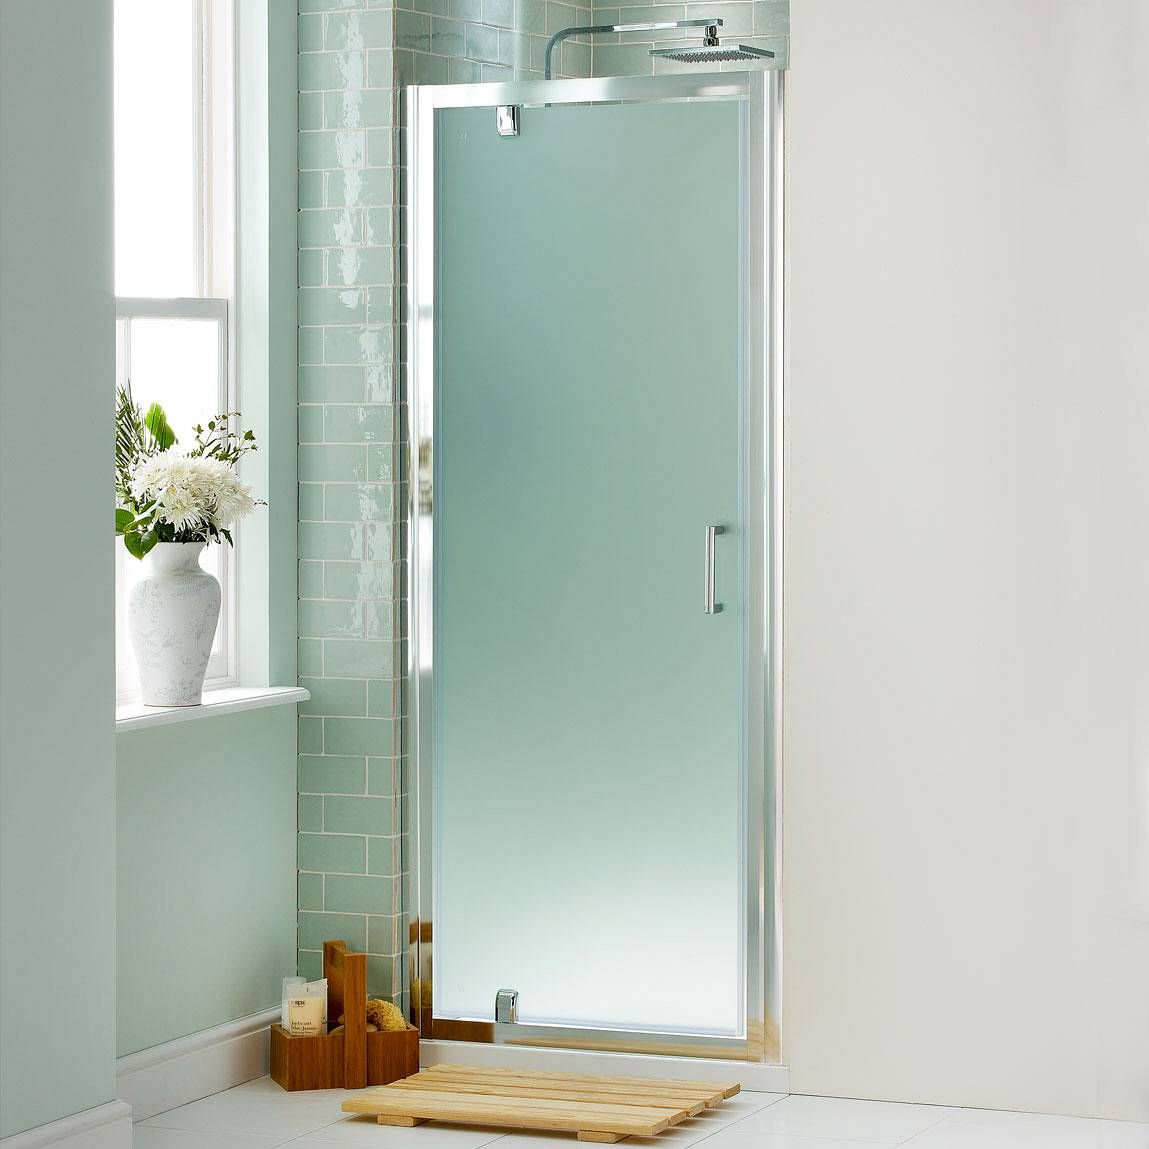 Places For Your Frosted Glass Door Http Thehomeknowitall Com